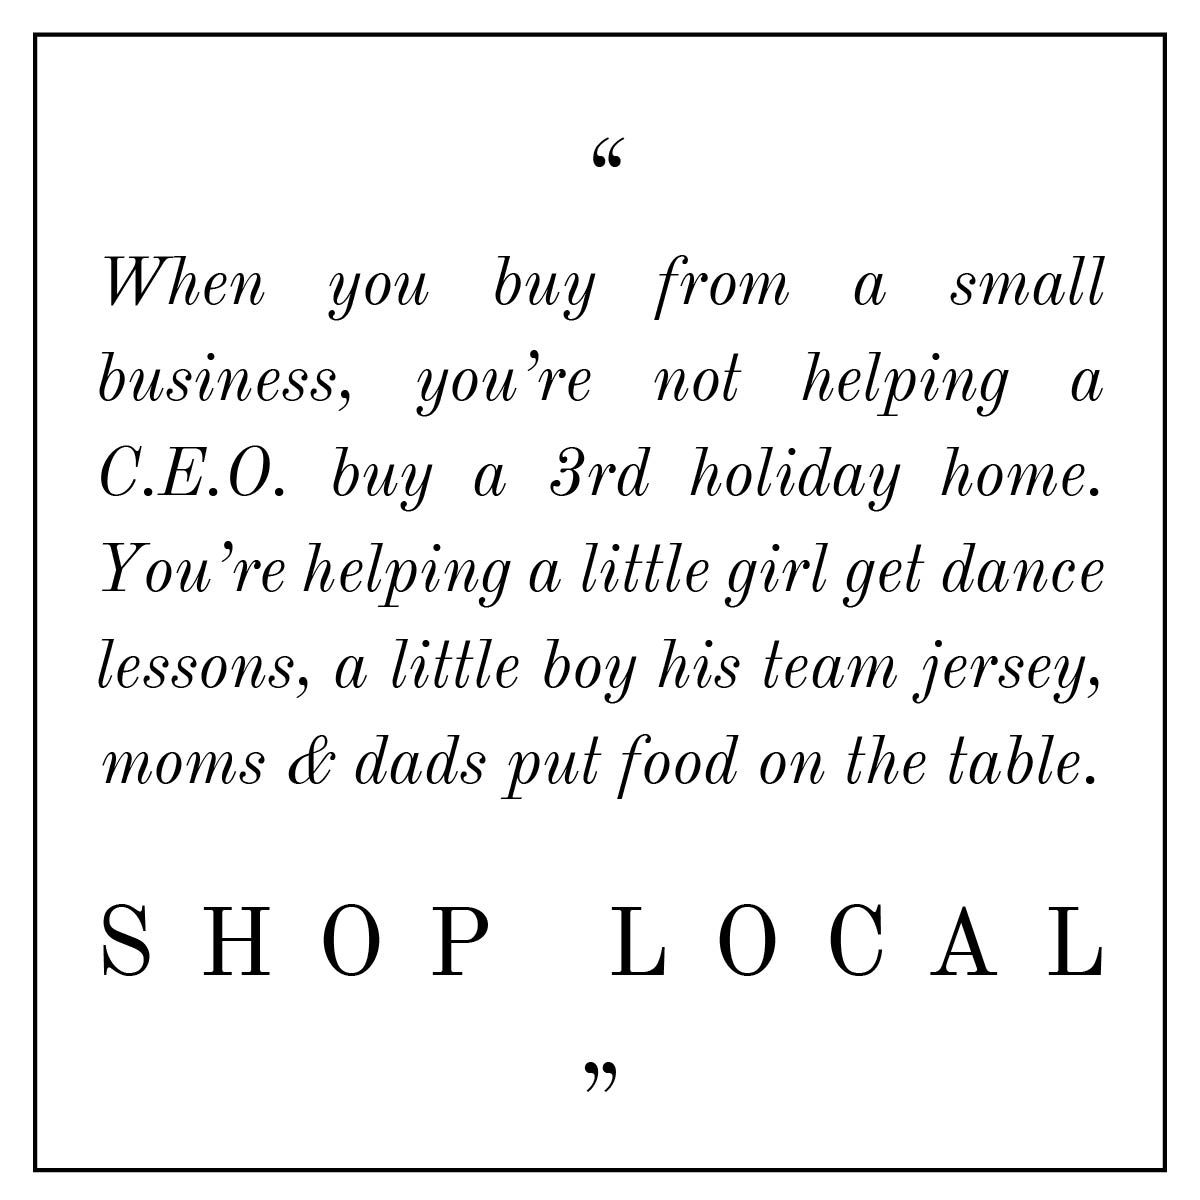 It is important to support the small businesses in your community because they are supporting a family.